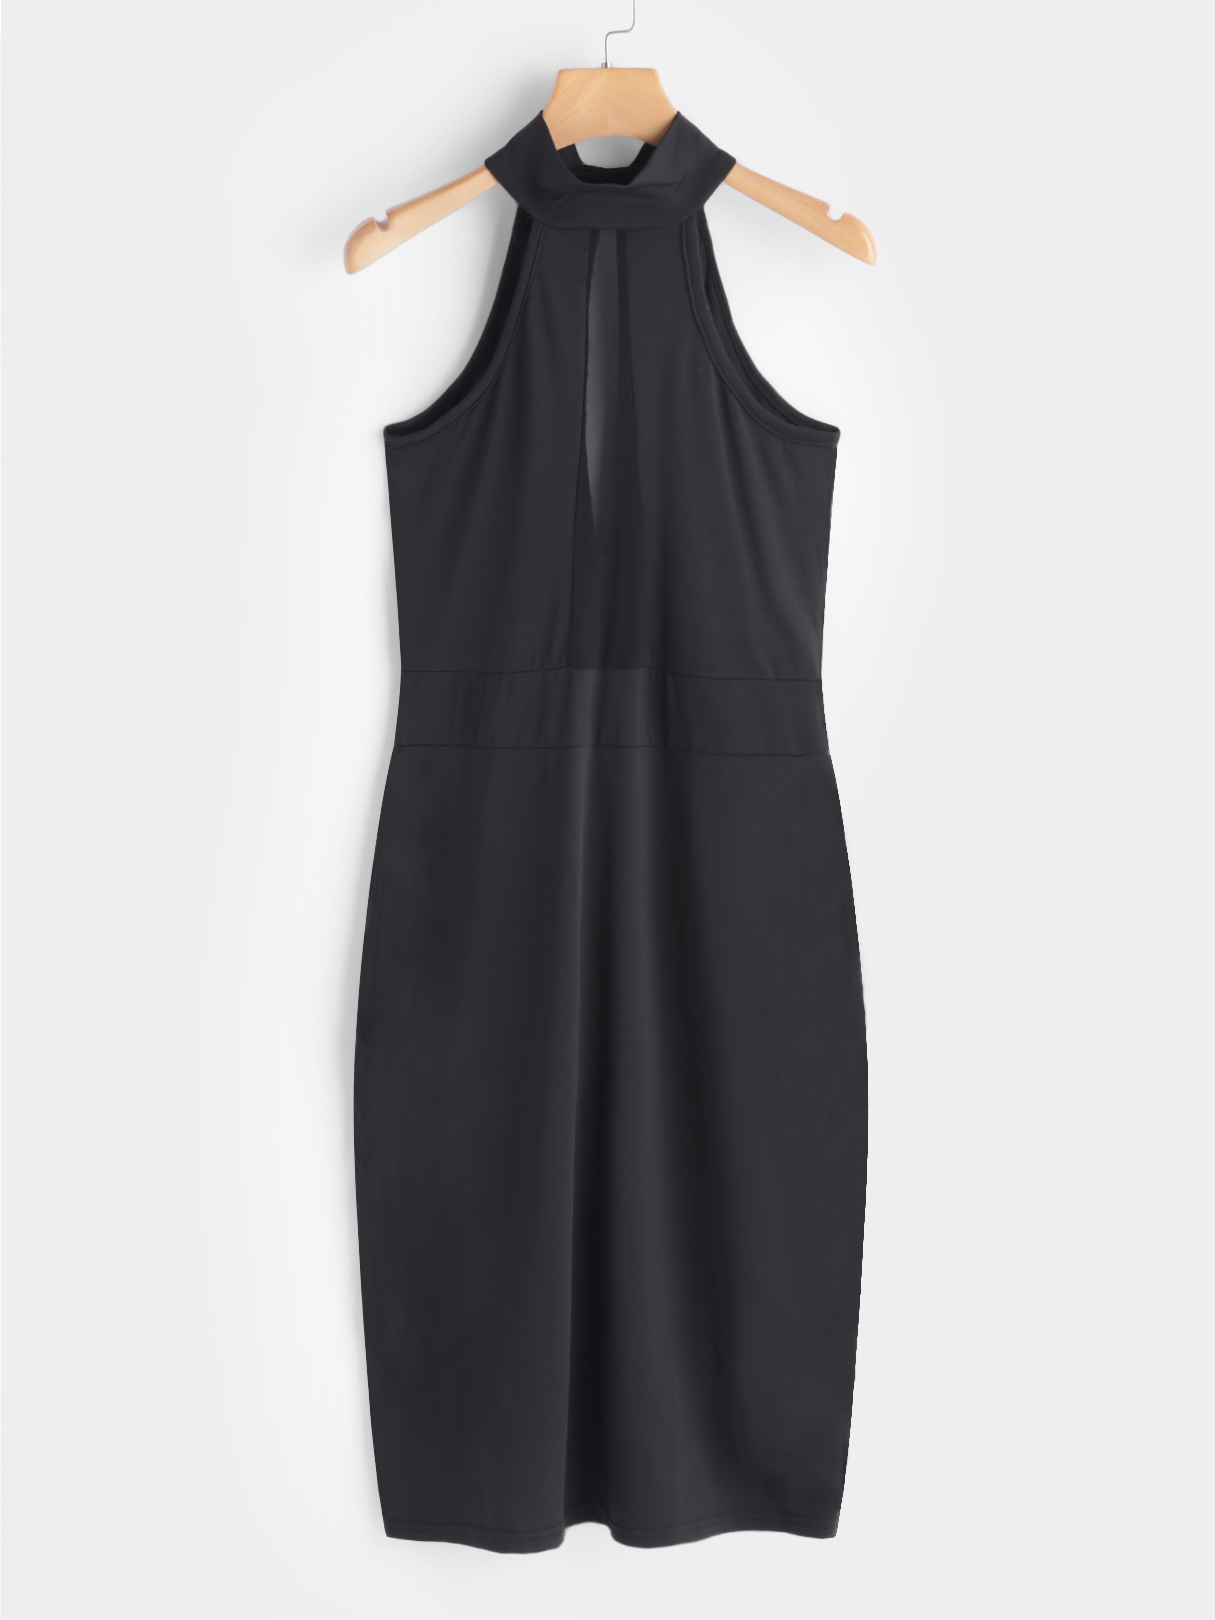 Black Cut Out Plain Halter Sleeveless Midi Dress cut out detail fit and flared sleeveless dress